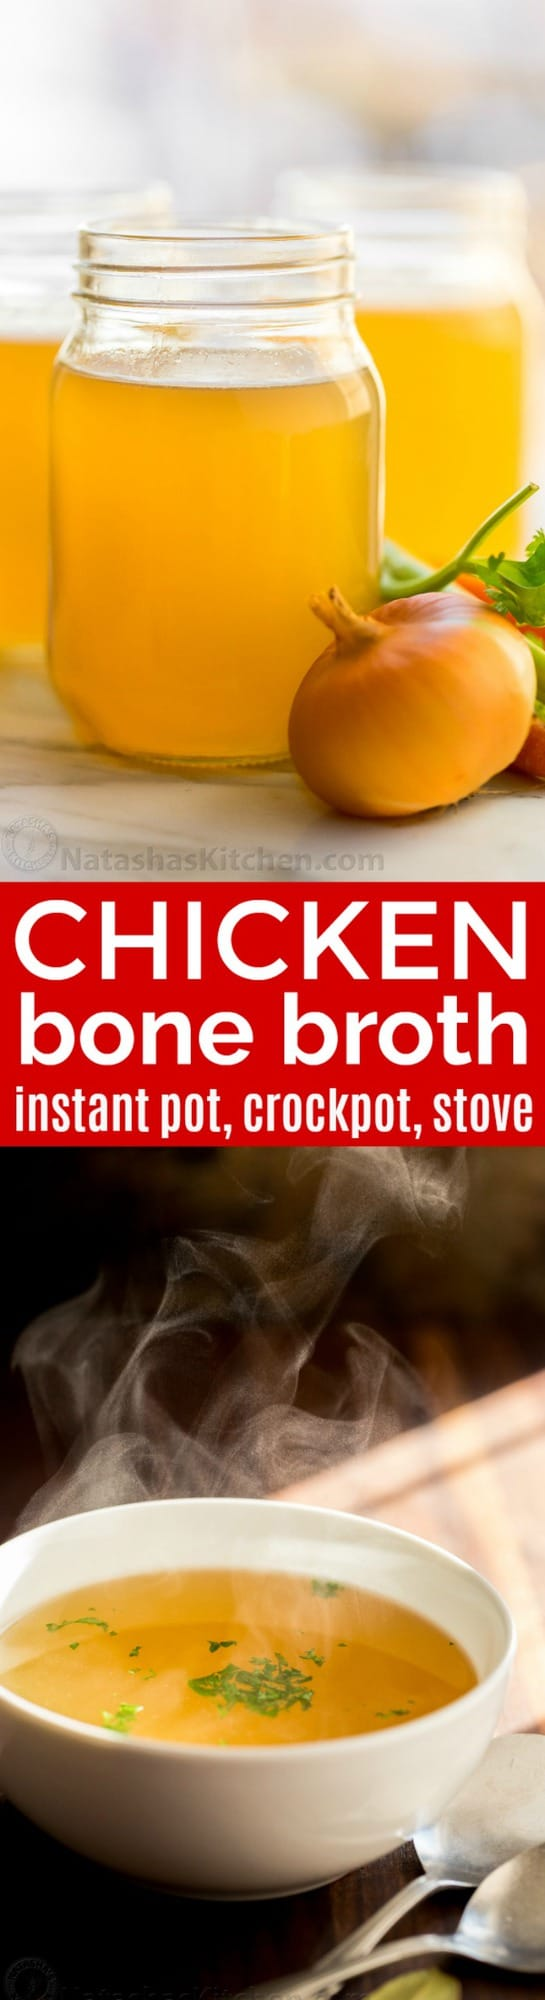 Chicken Broth Soup Ideas Smitten Kitchen